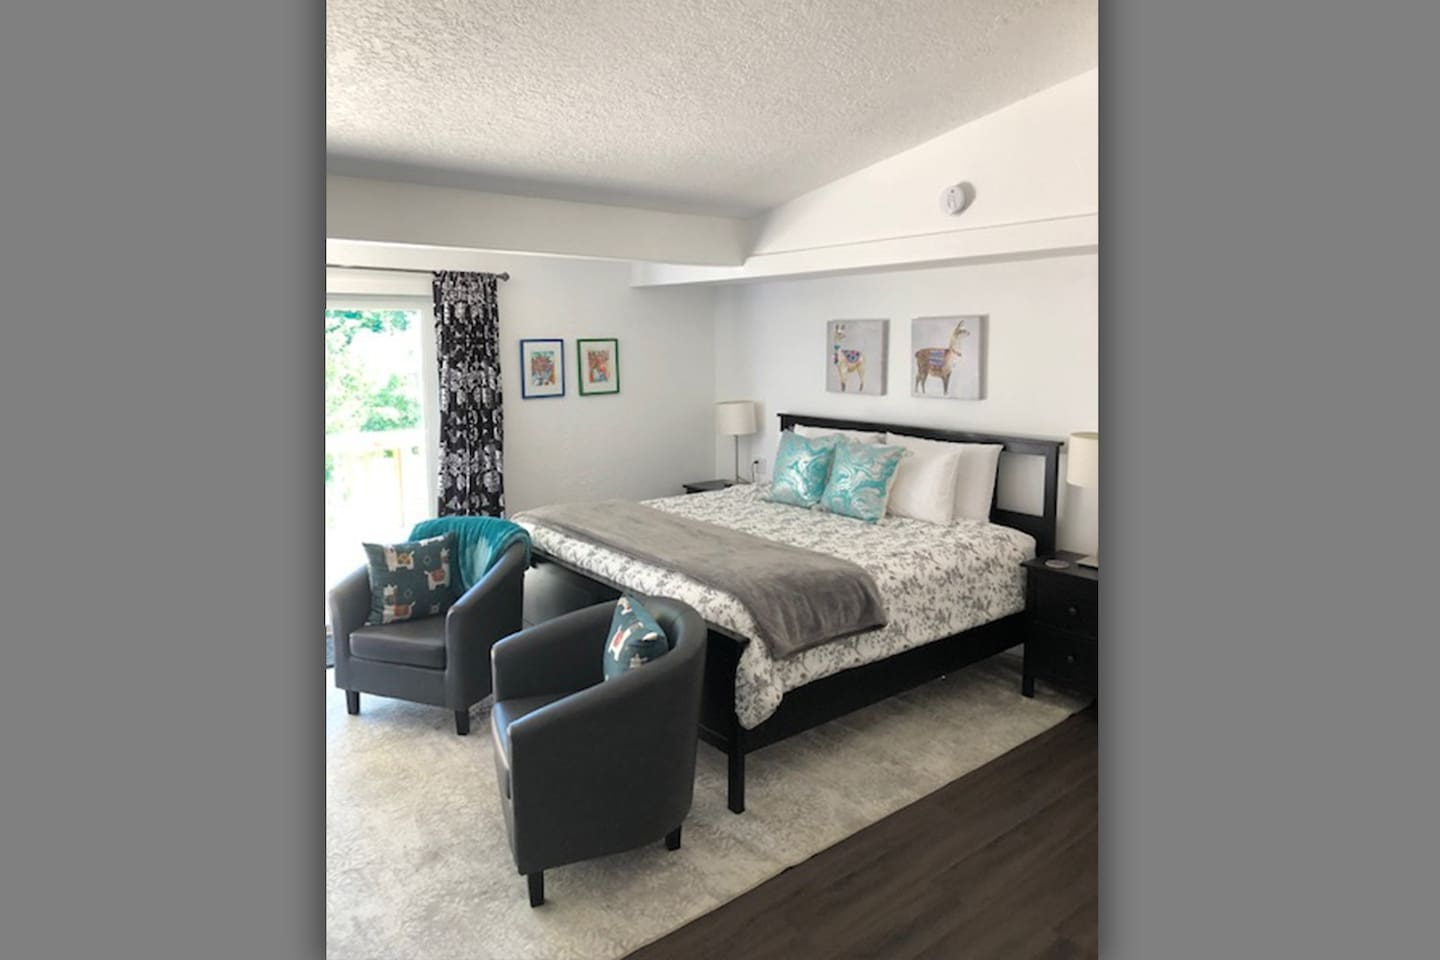 A large room with a very comfortable King-sized bed!